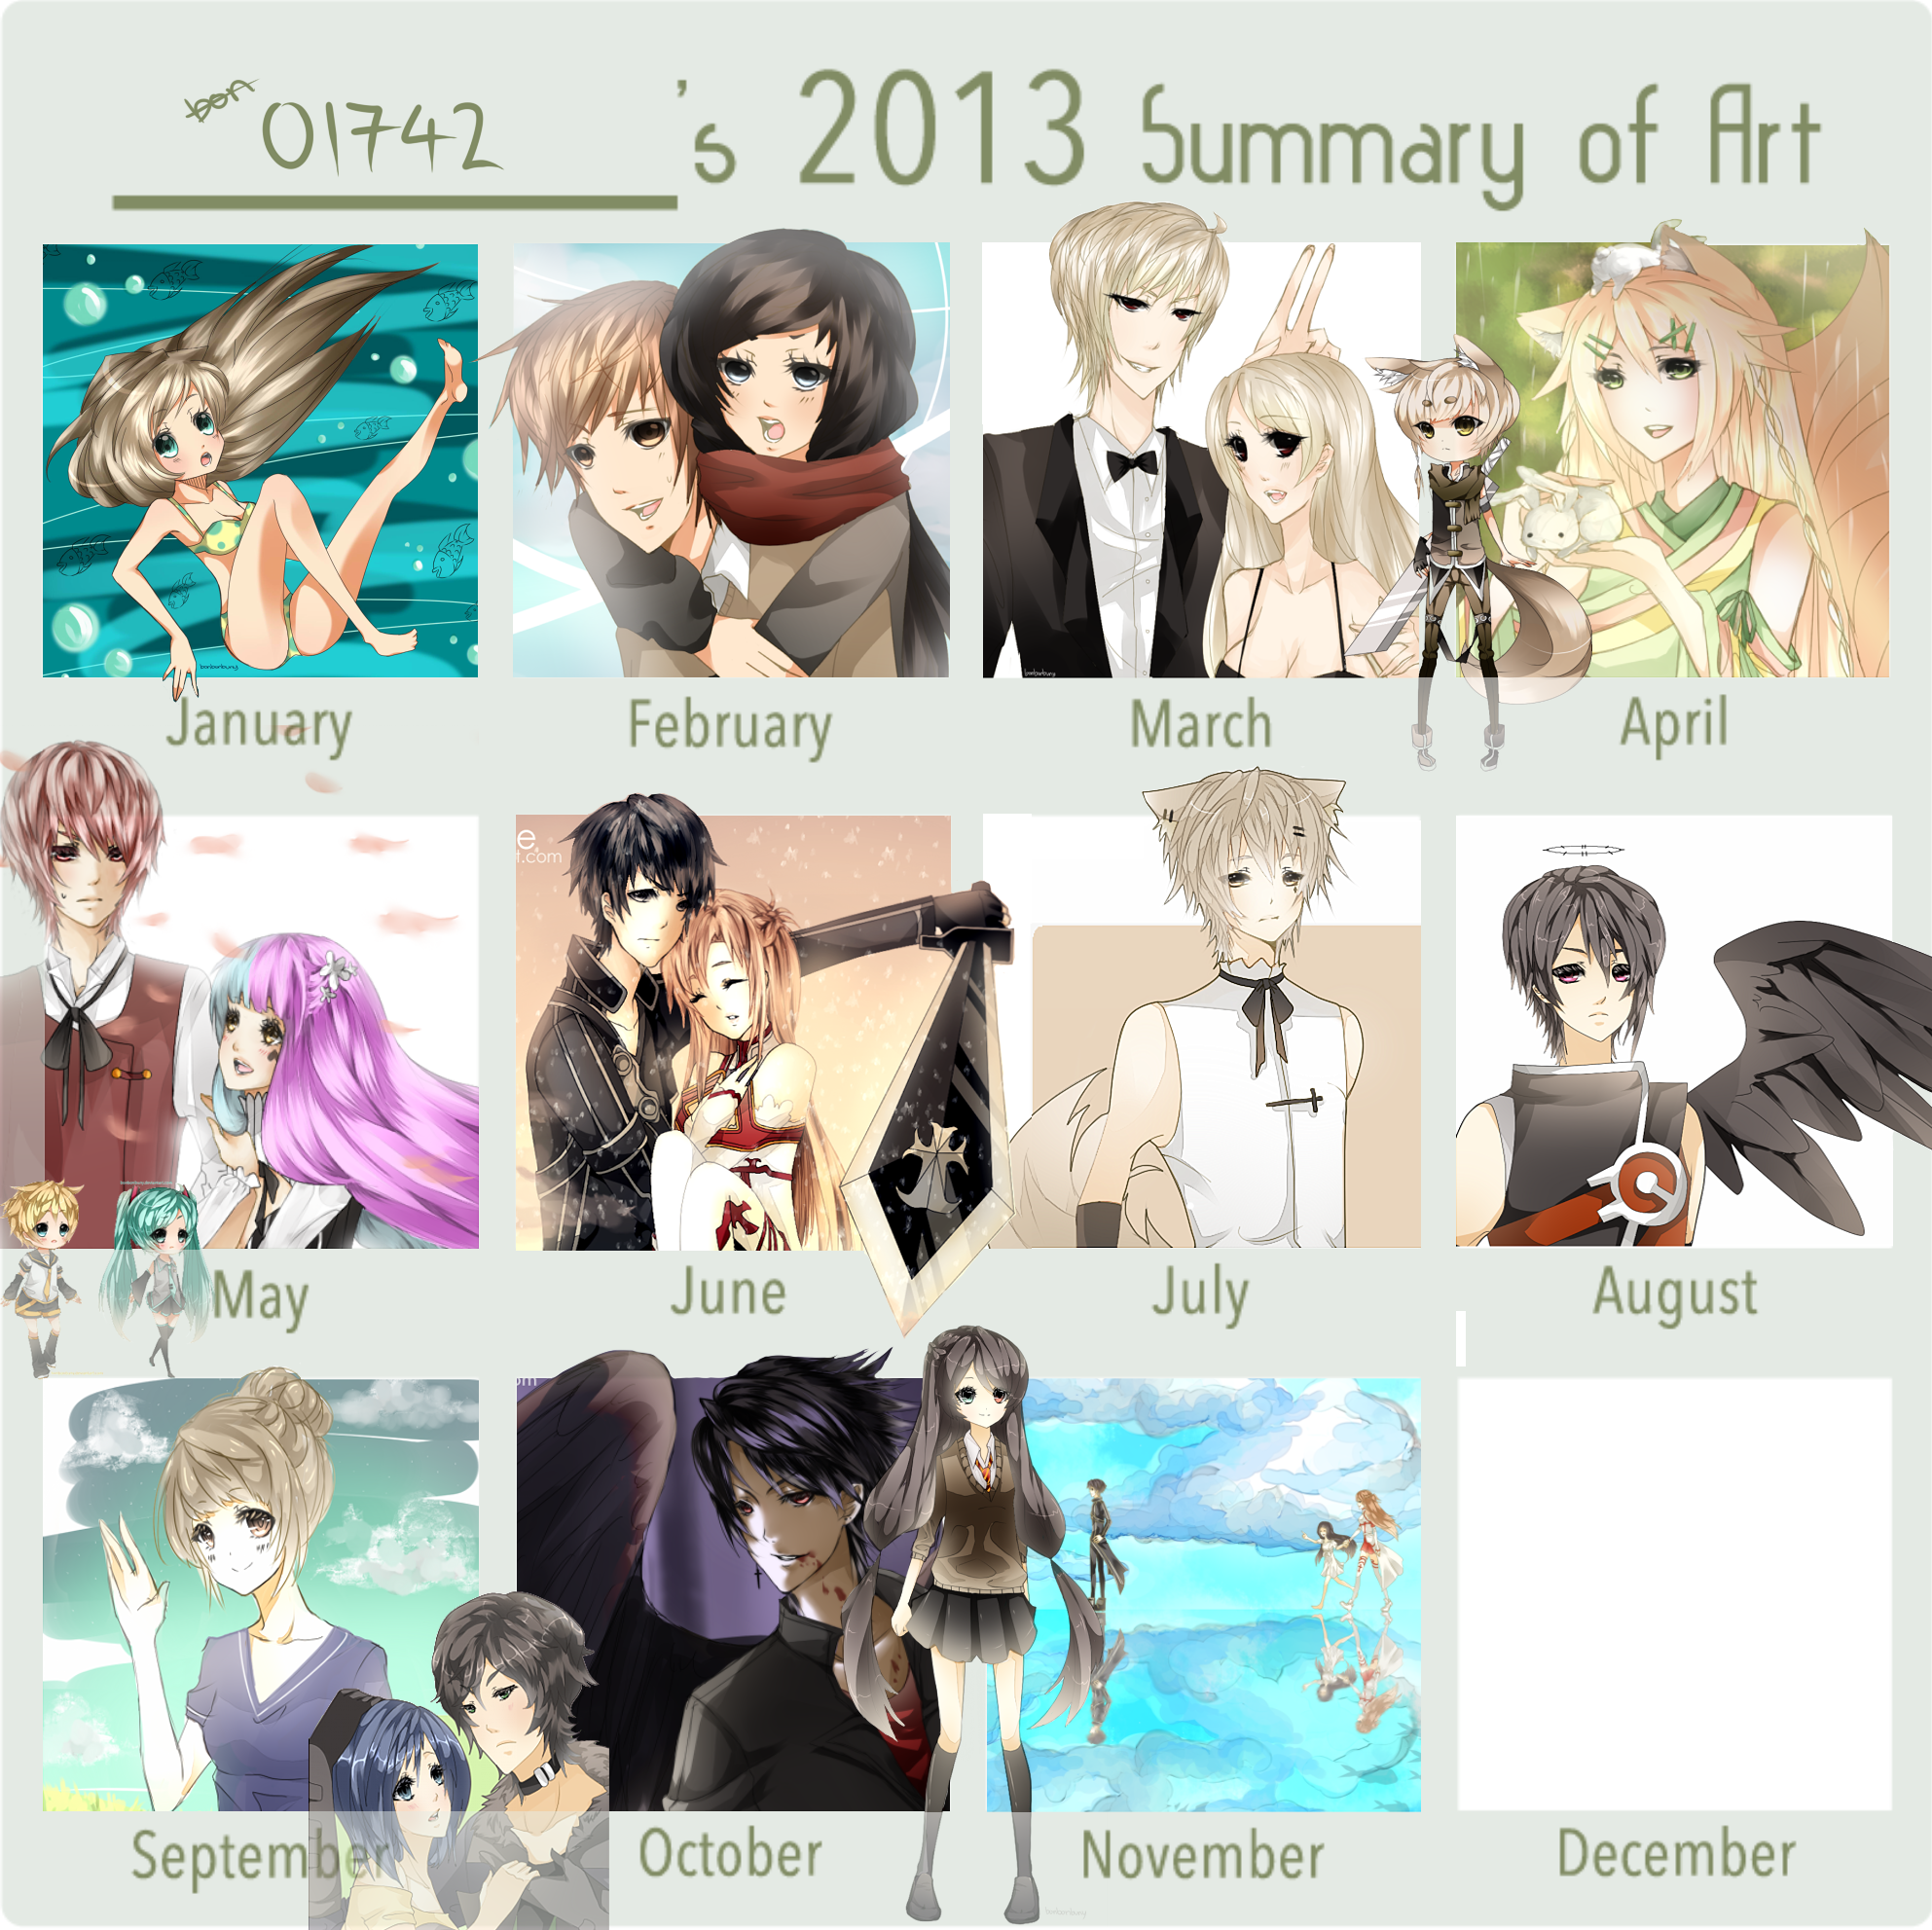 2013 ART SUMMARY by p1z